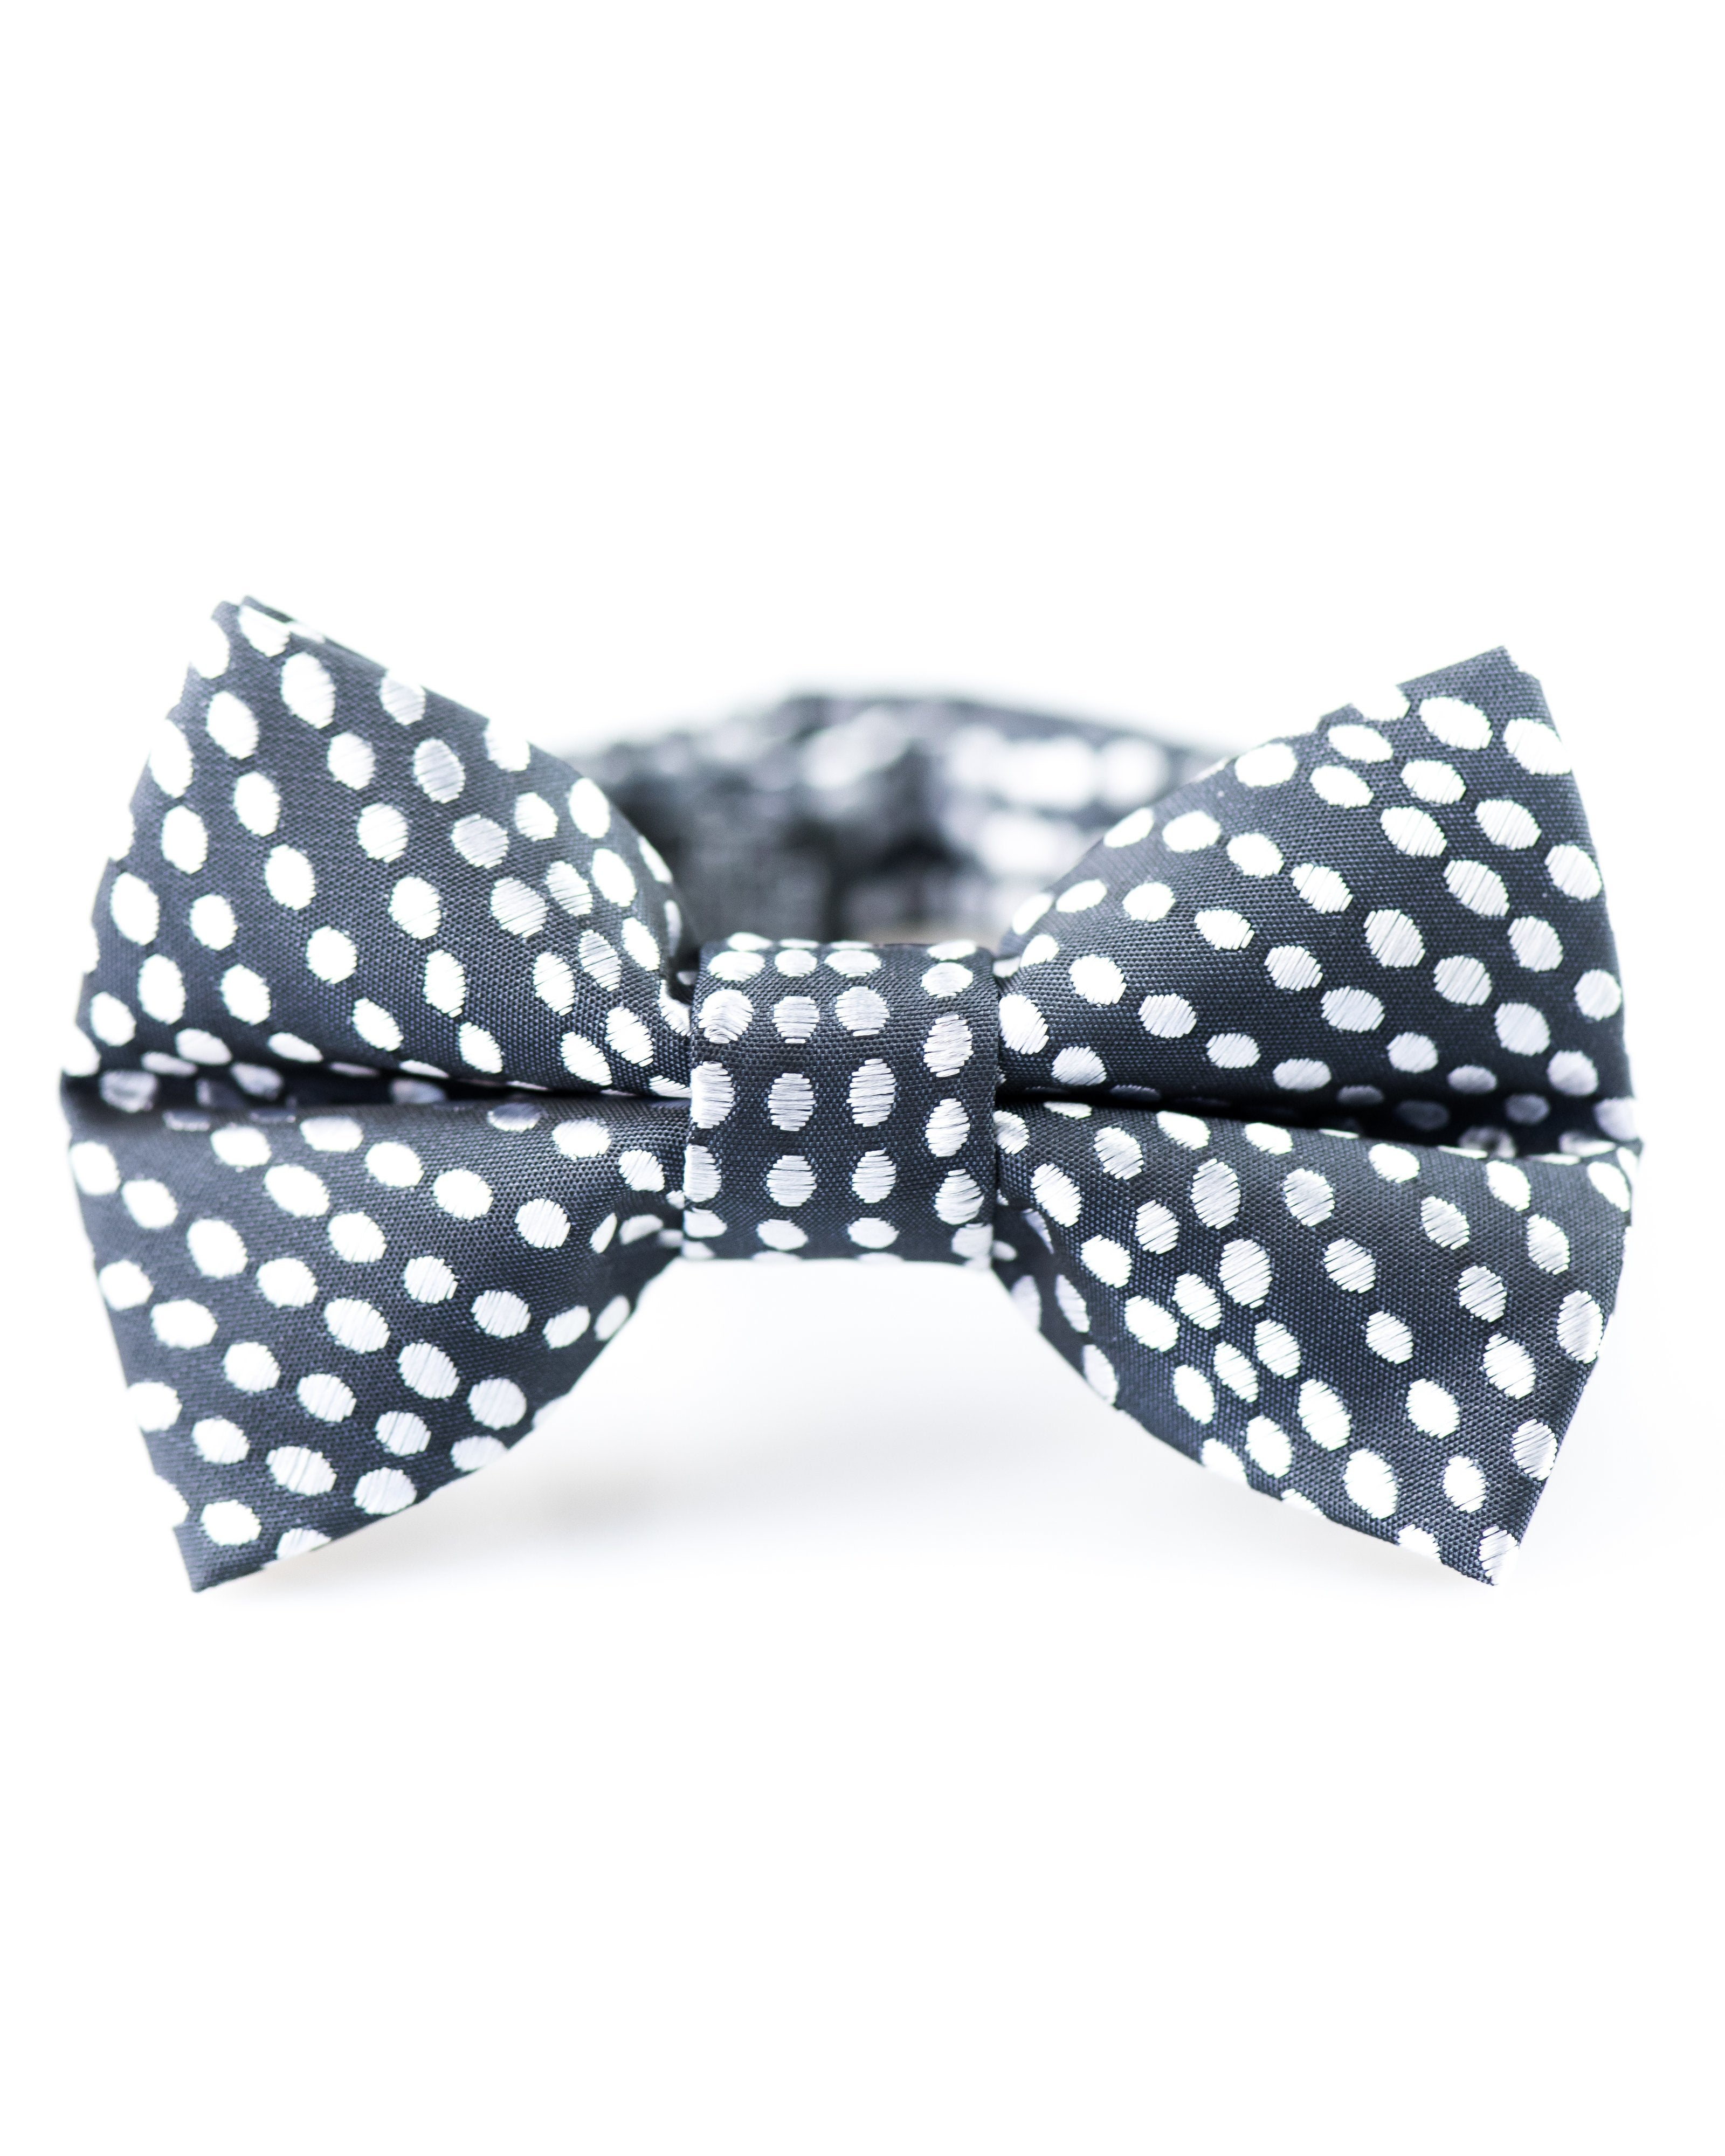 black-and-silver-spots-bow-tie.jpg